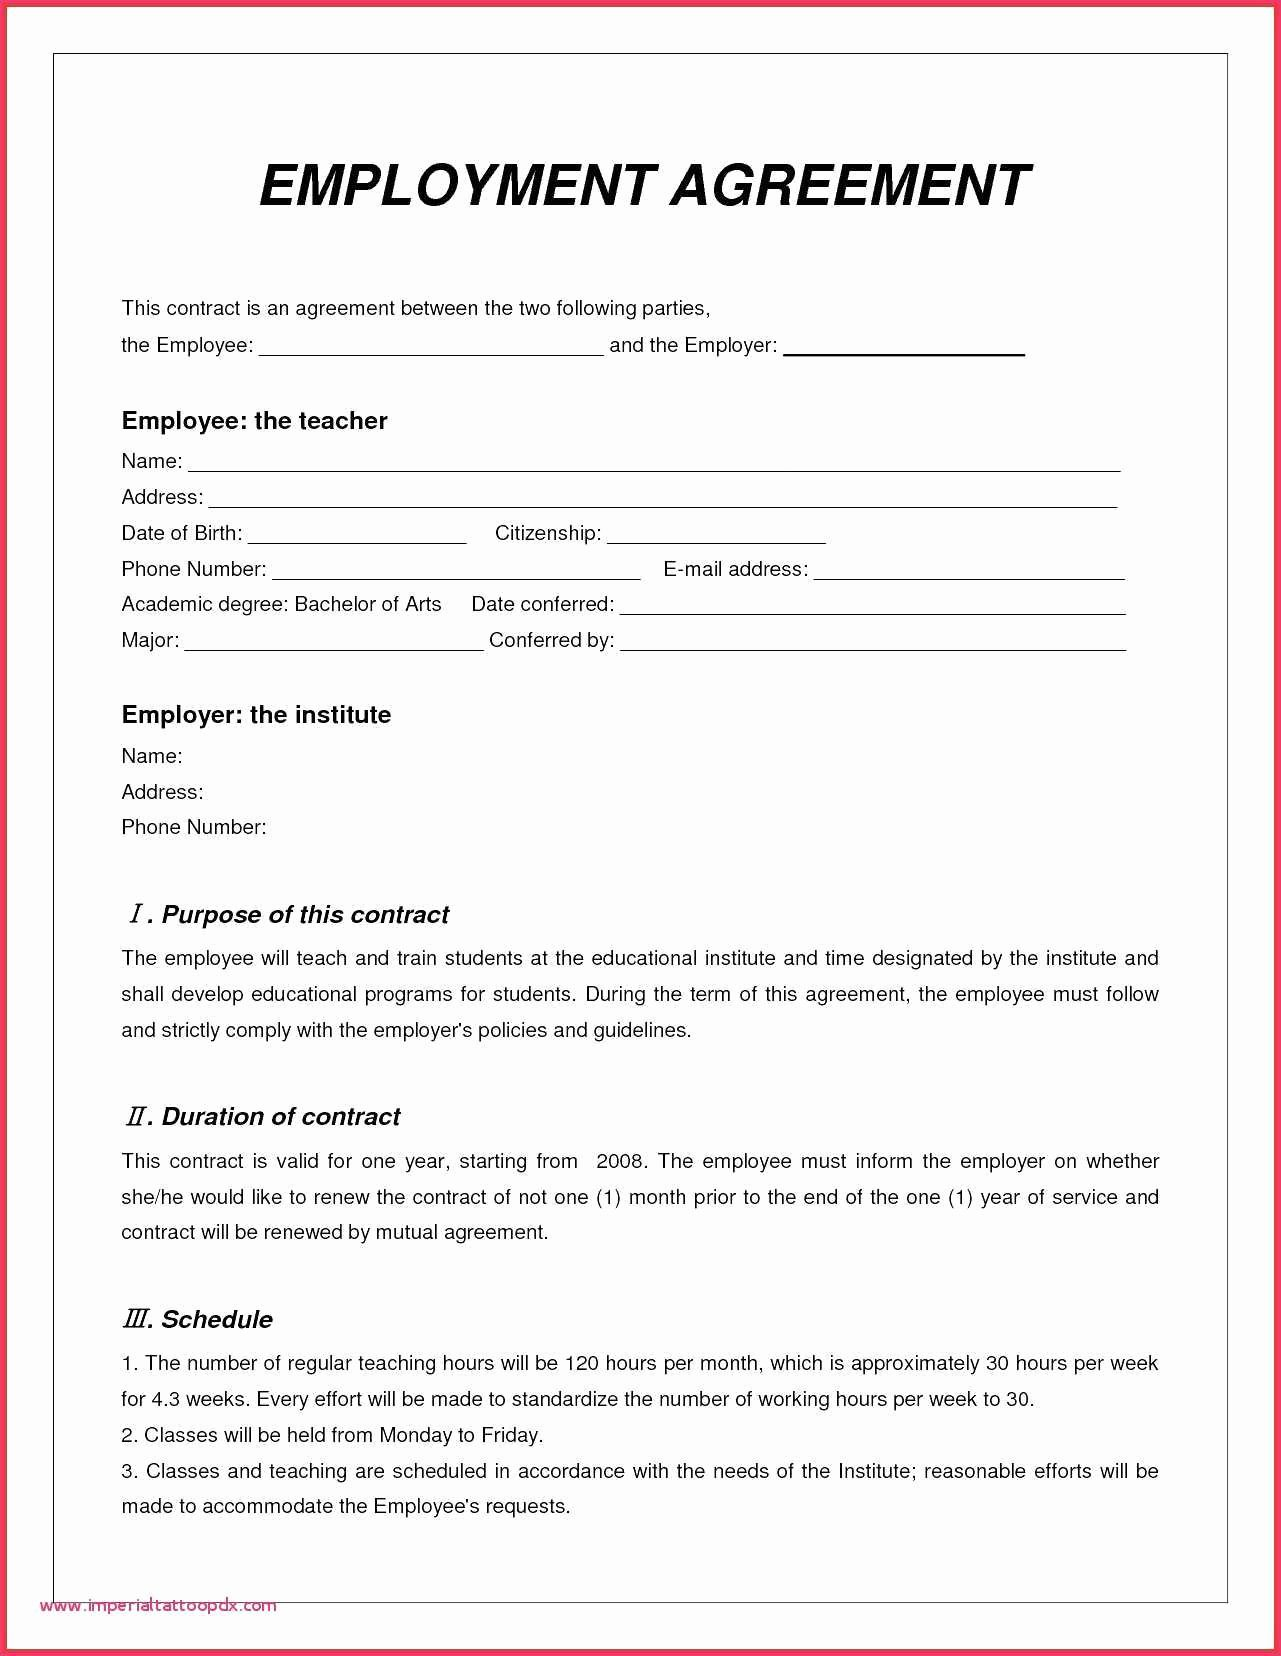 Simple Advertising Contract Template Inspirational Advertising Contract Agreement Simple Advertising Contract